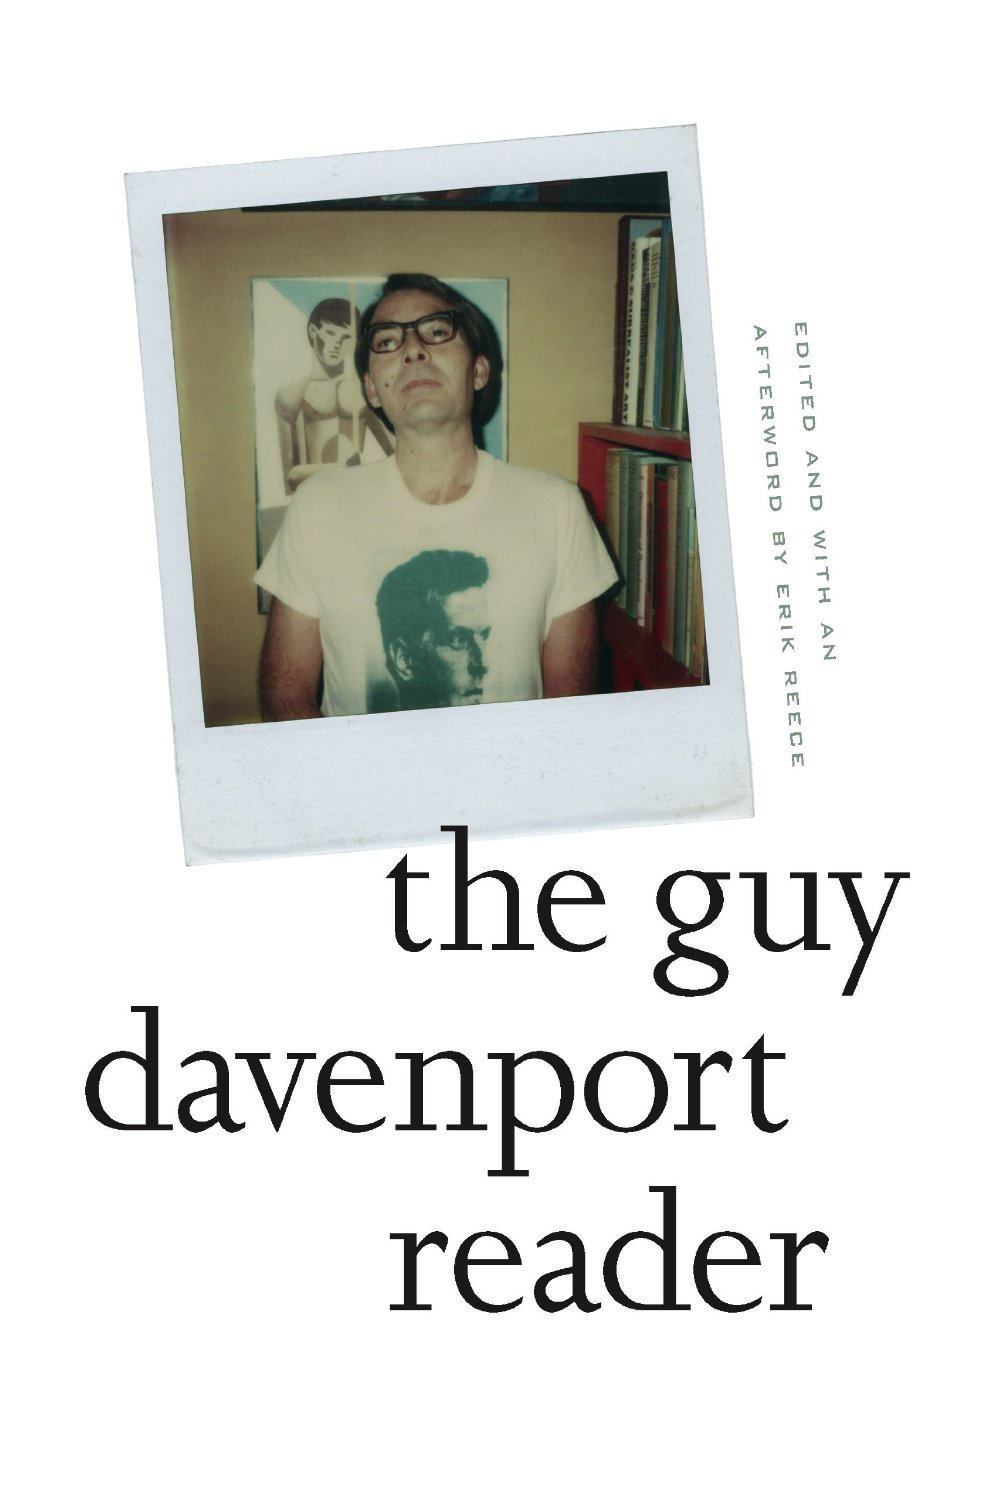 geography of the imagination guy davenport essay Browse and read the geography of imagination forty essays guy davenport the geography of imagination forty essays guy davenport we may not be able to make you love reading, but the geography of imagination forty essays guy davenport will.